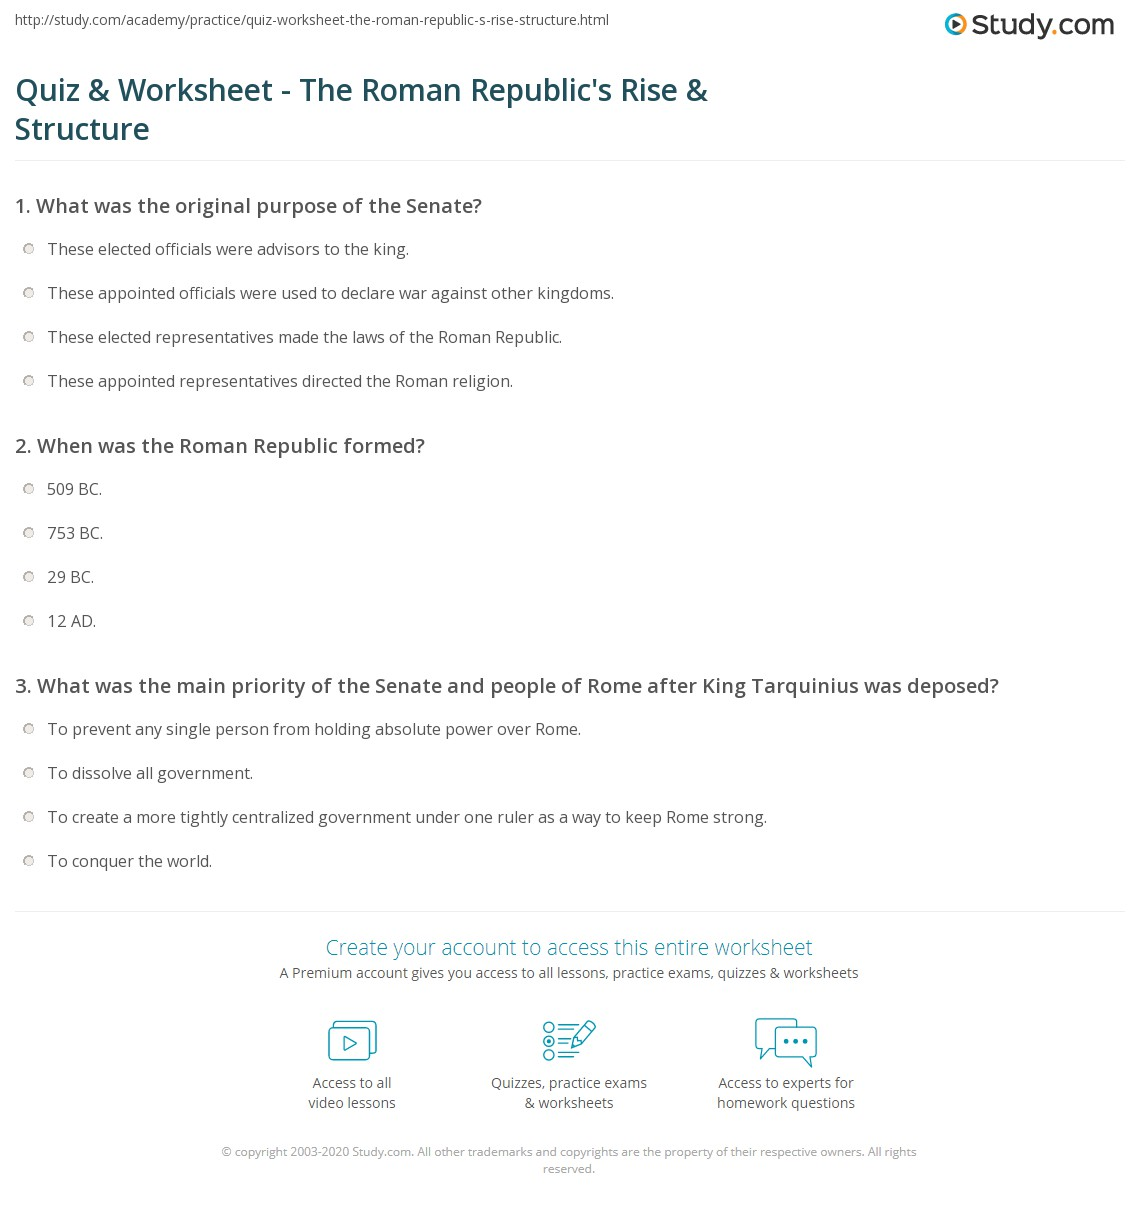 quiz worksheet the roman republic 39 s rise structure. Black Bedroom Furniture Sets. Home Design Ideas